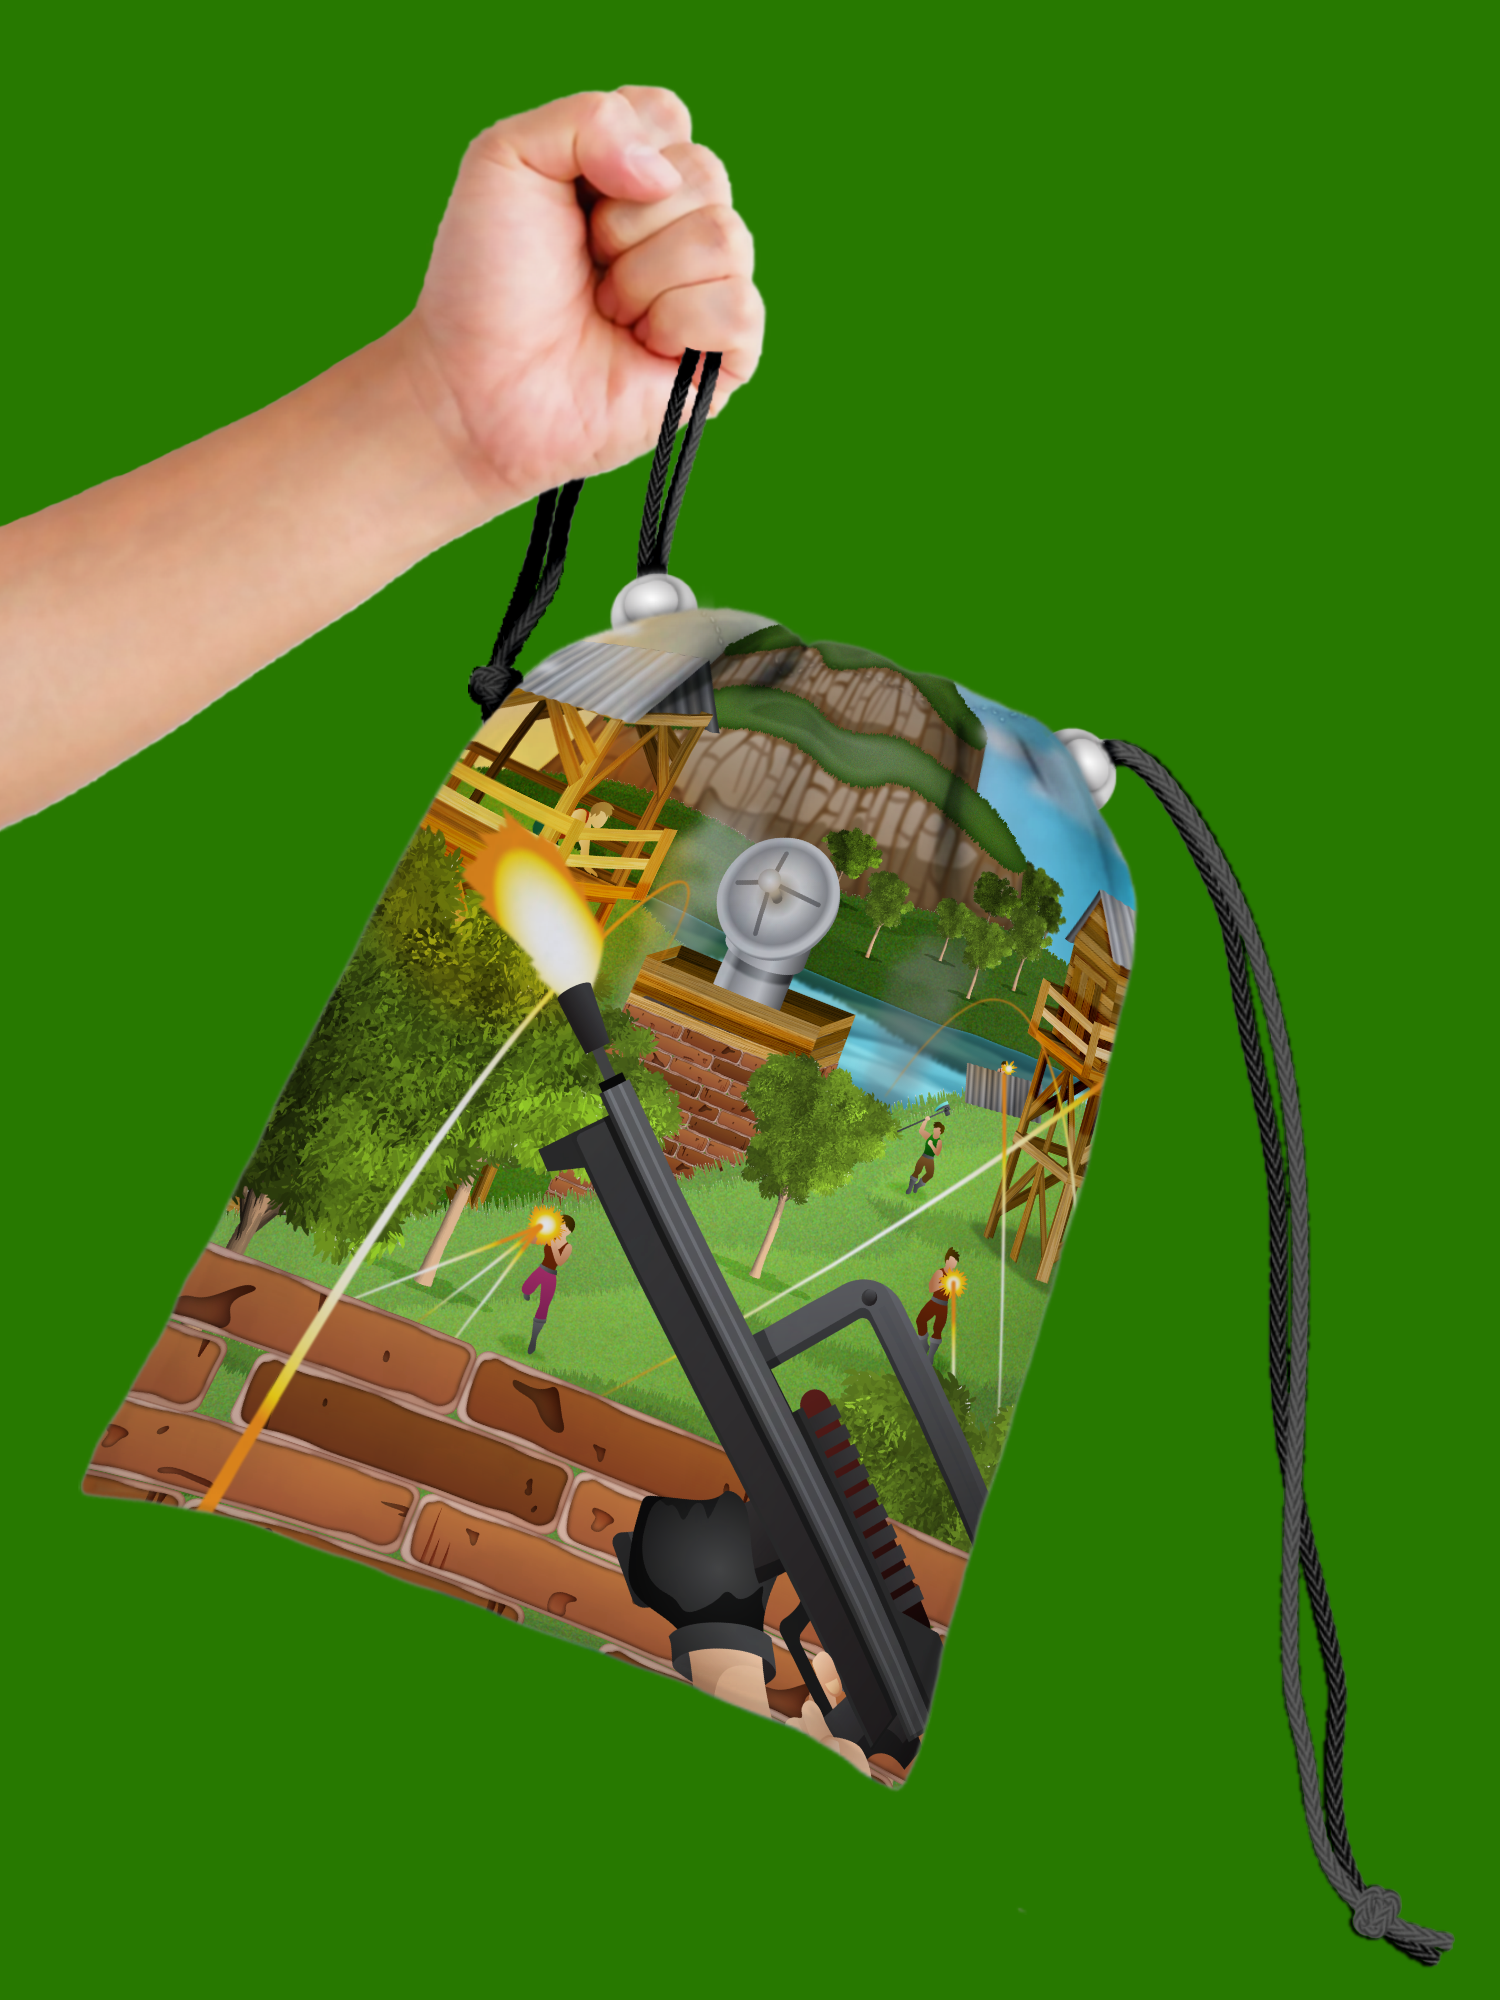 Fortress Drawstring Tote Bag (10 Pack) - BirthdayGalore.com